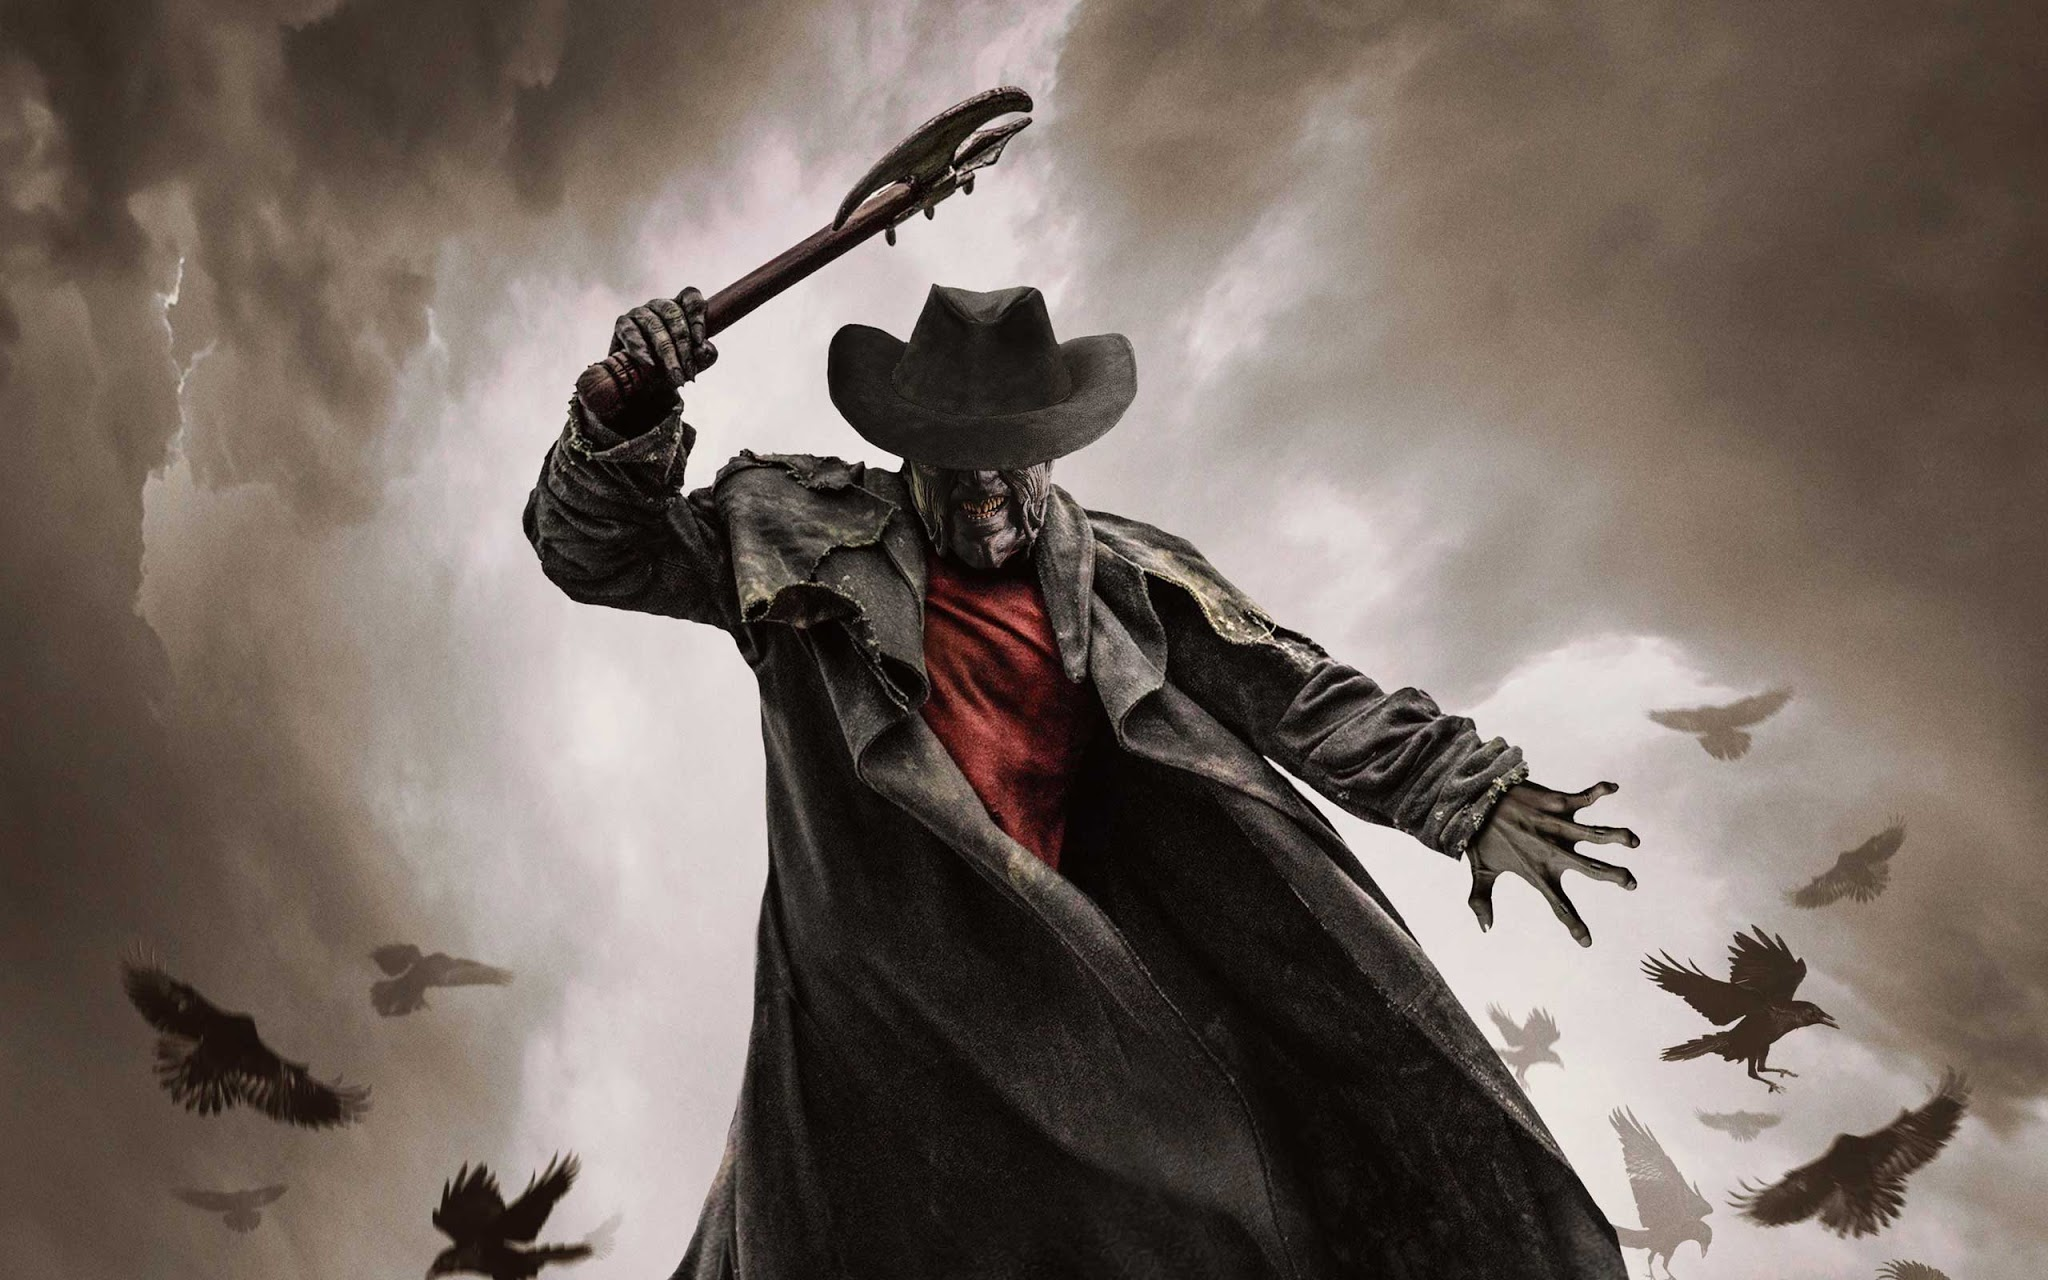 jeepers-creepers-3-3840x2400-horror-myst